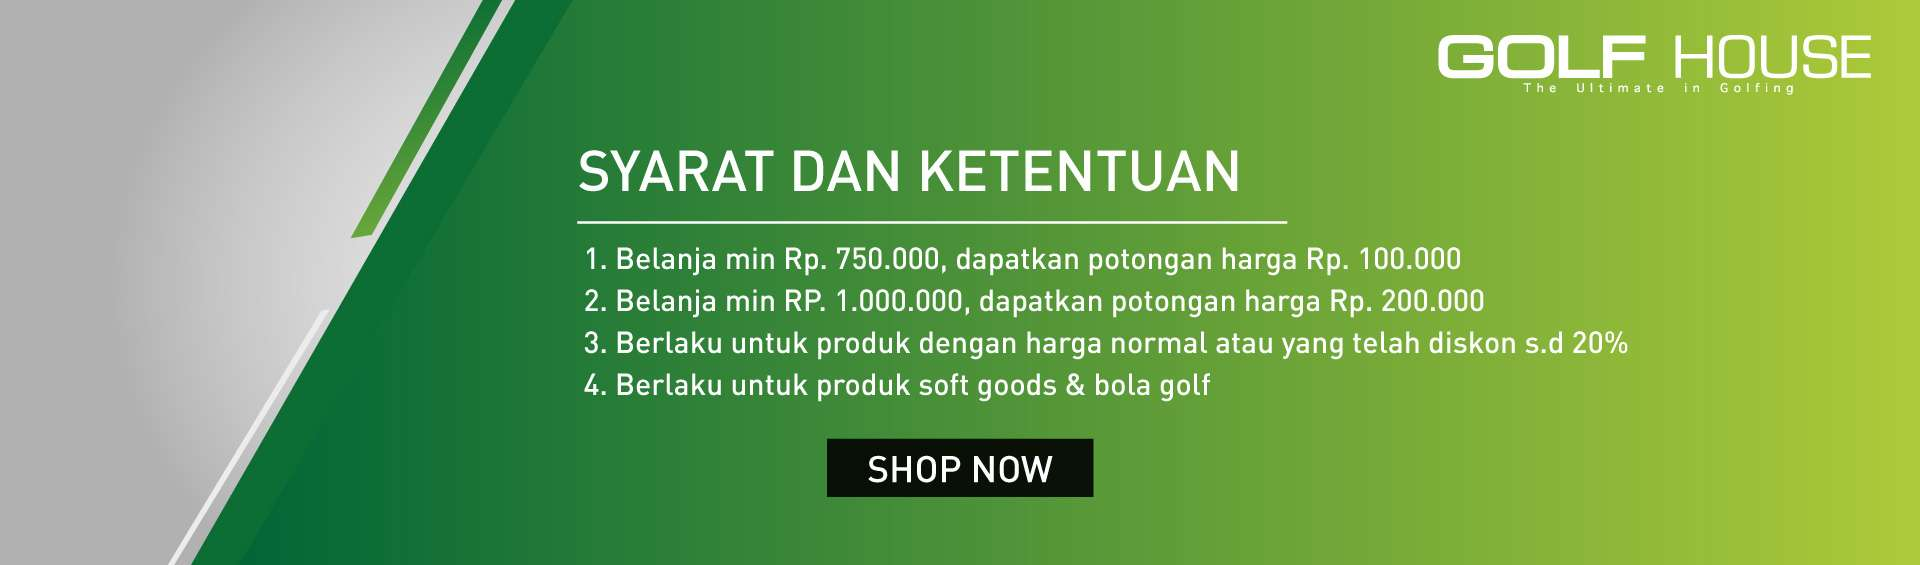 Cash Rebate GOLF HOUSE up to 200K 5-7 Mar